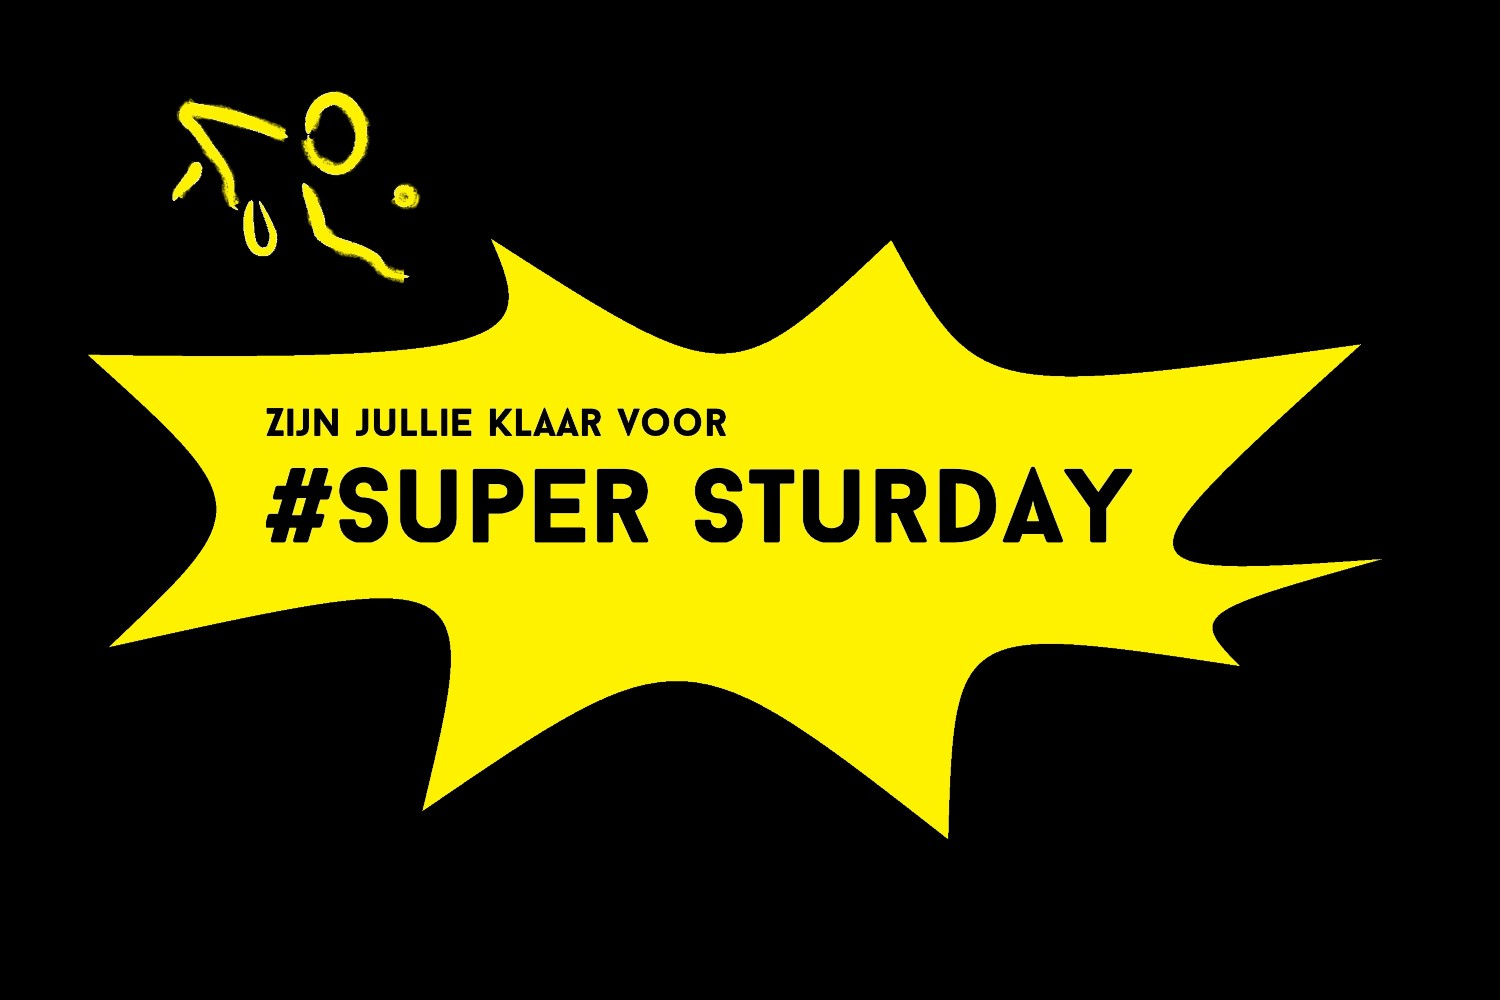 Super Saturday; Tafeltennis; Competitie